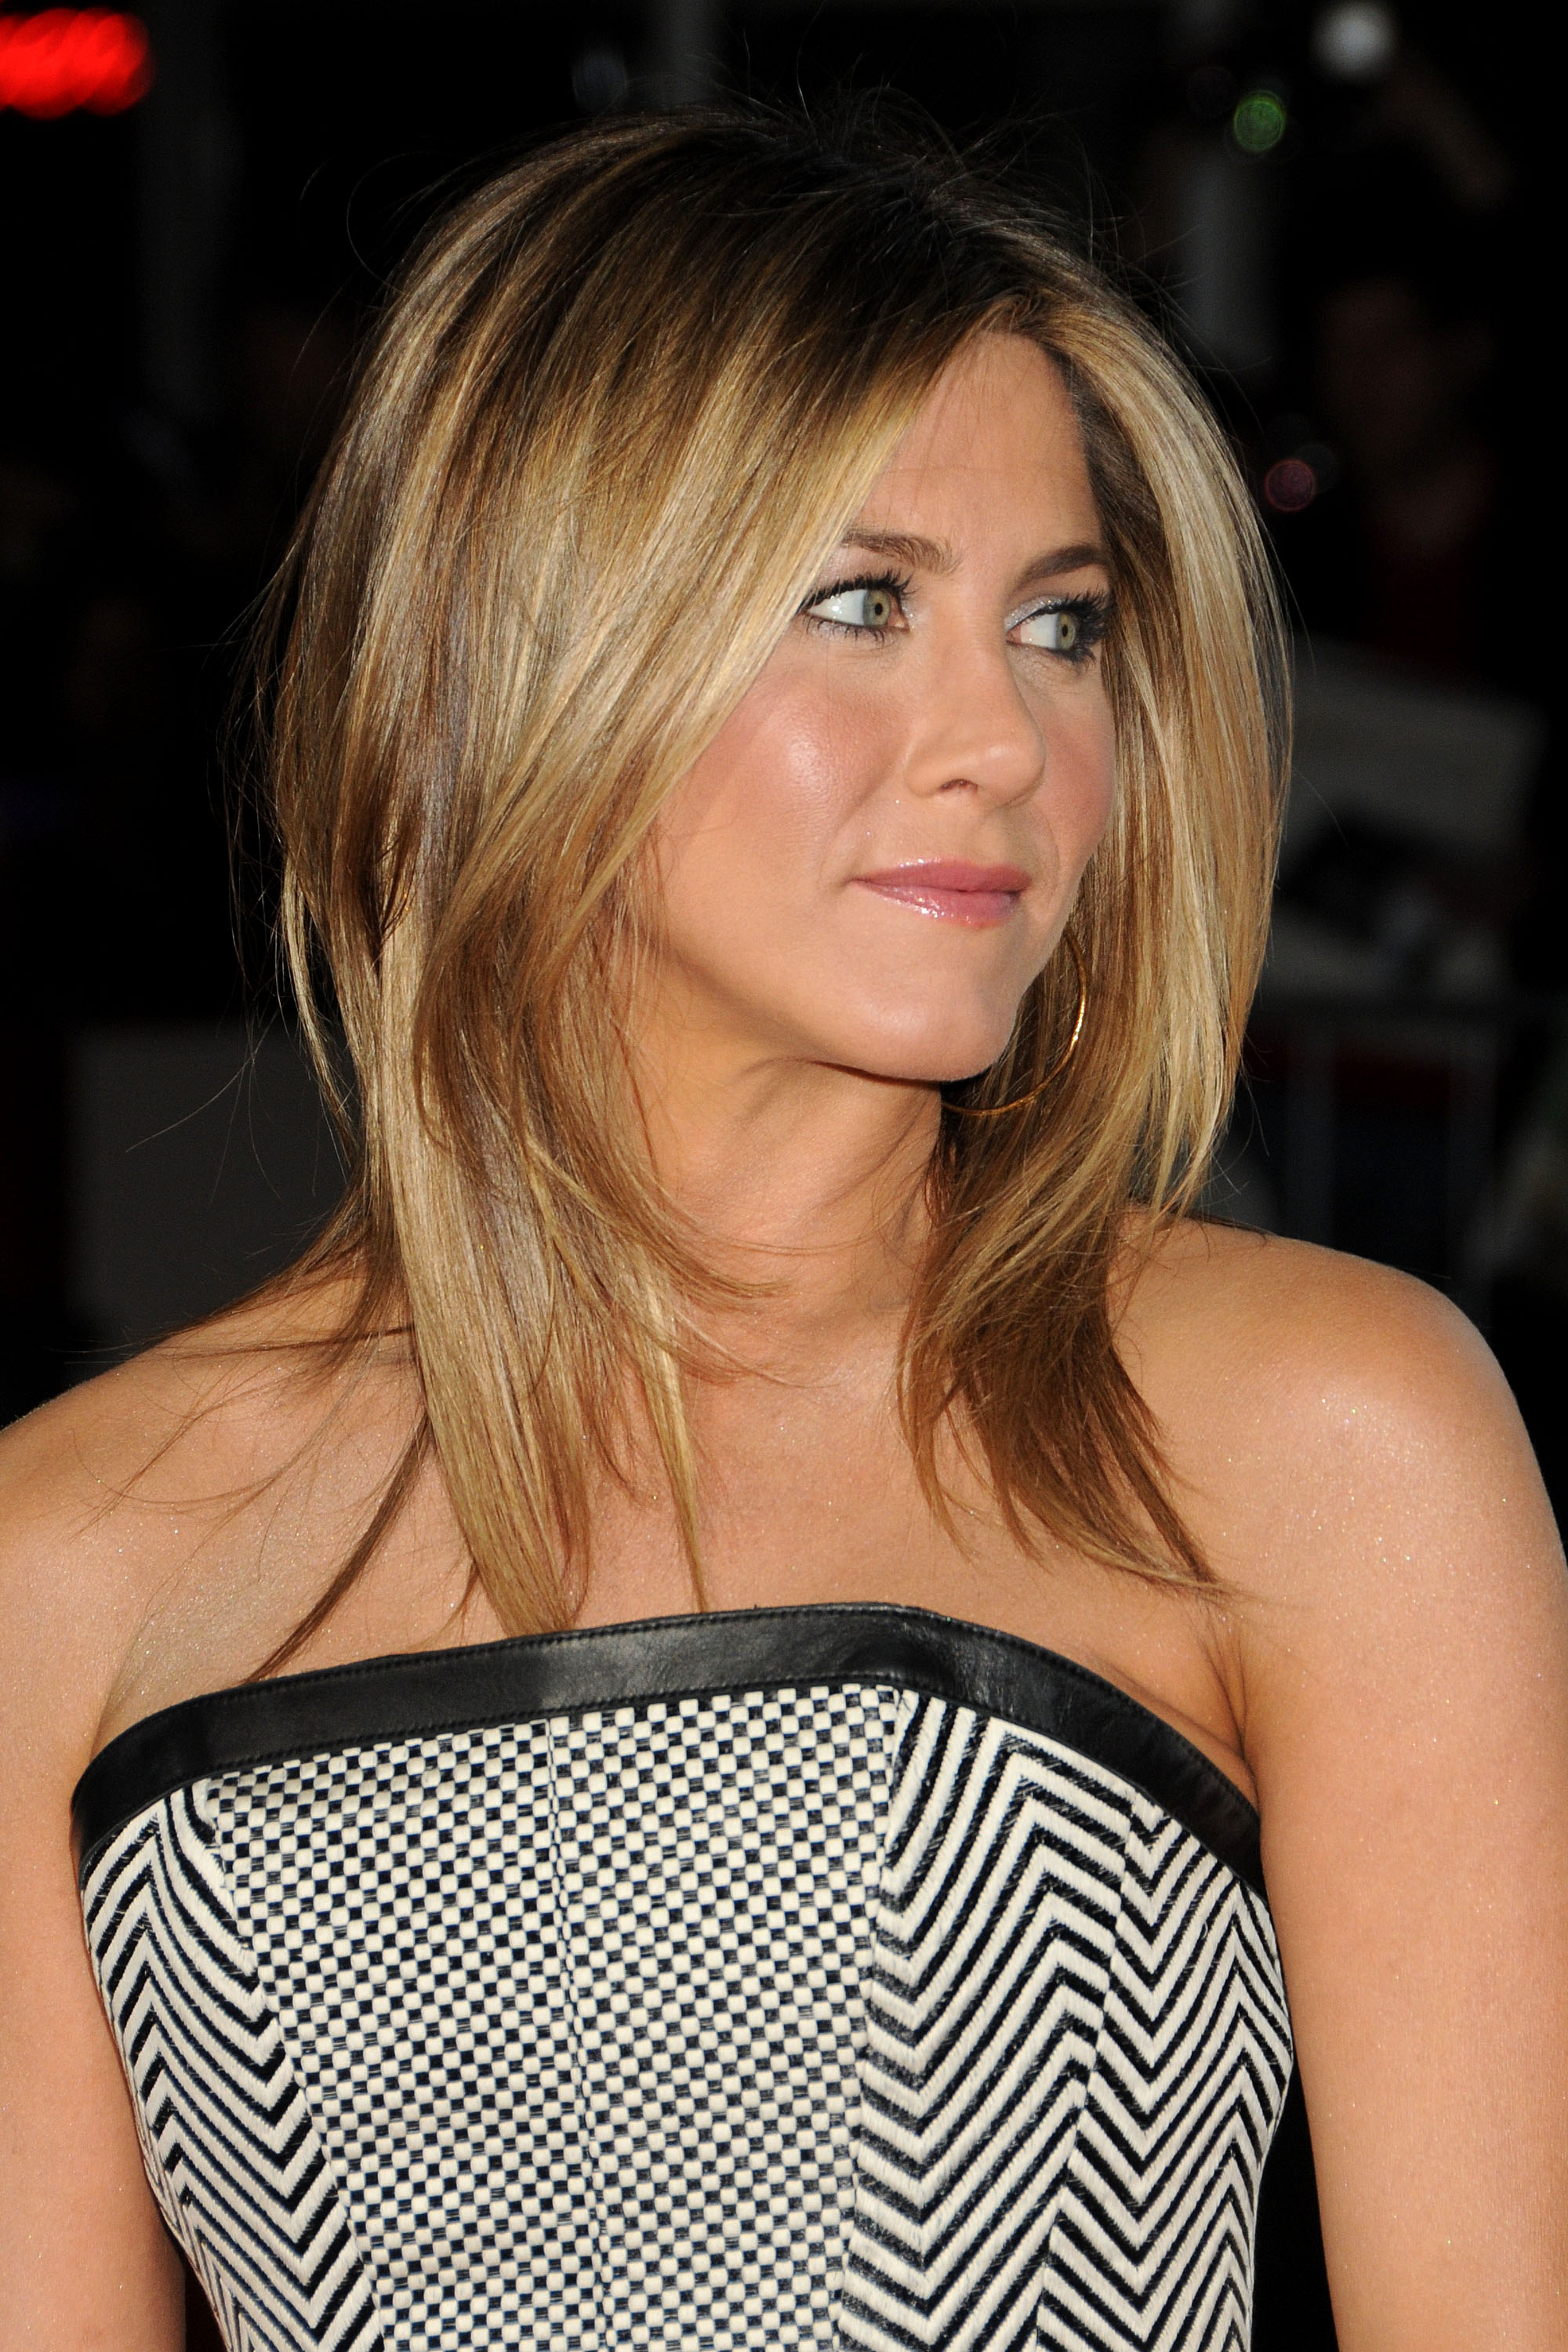 Debra Messing Braless Classy jennifer aniston pictures gallery (26)   film actresses